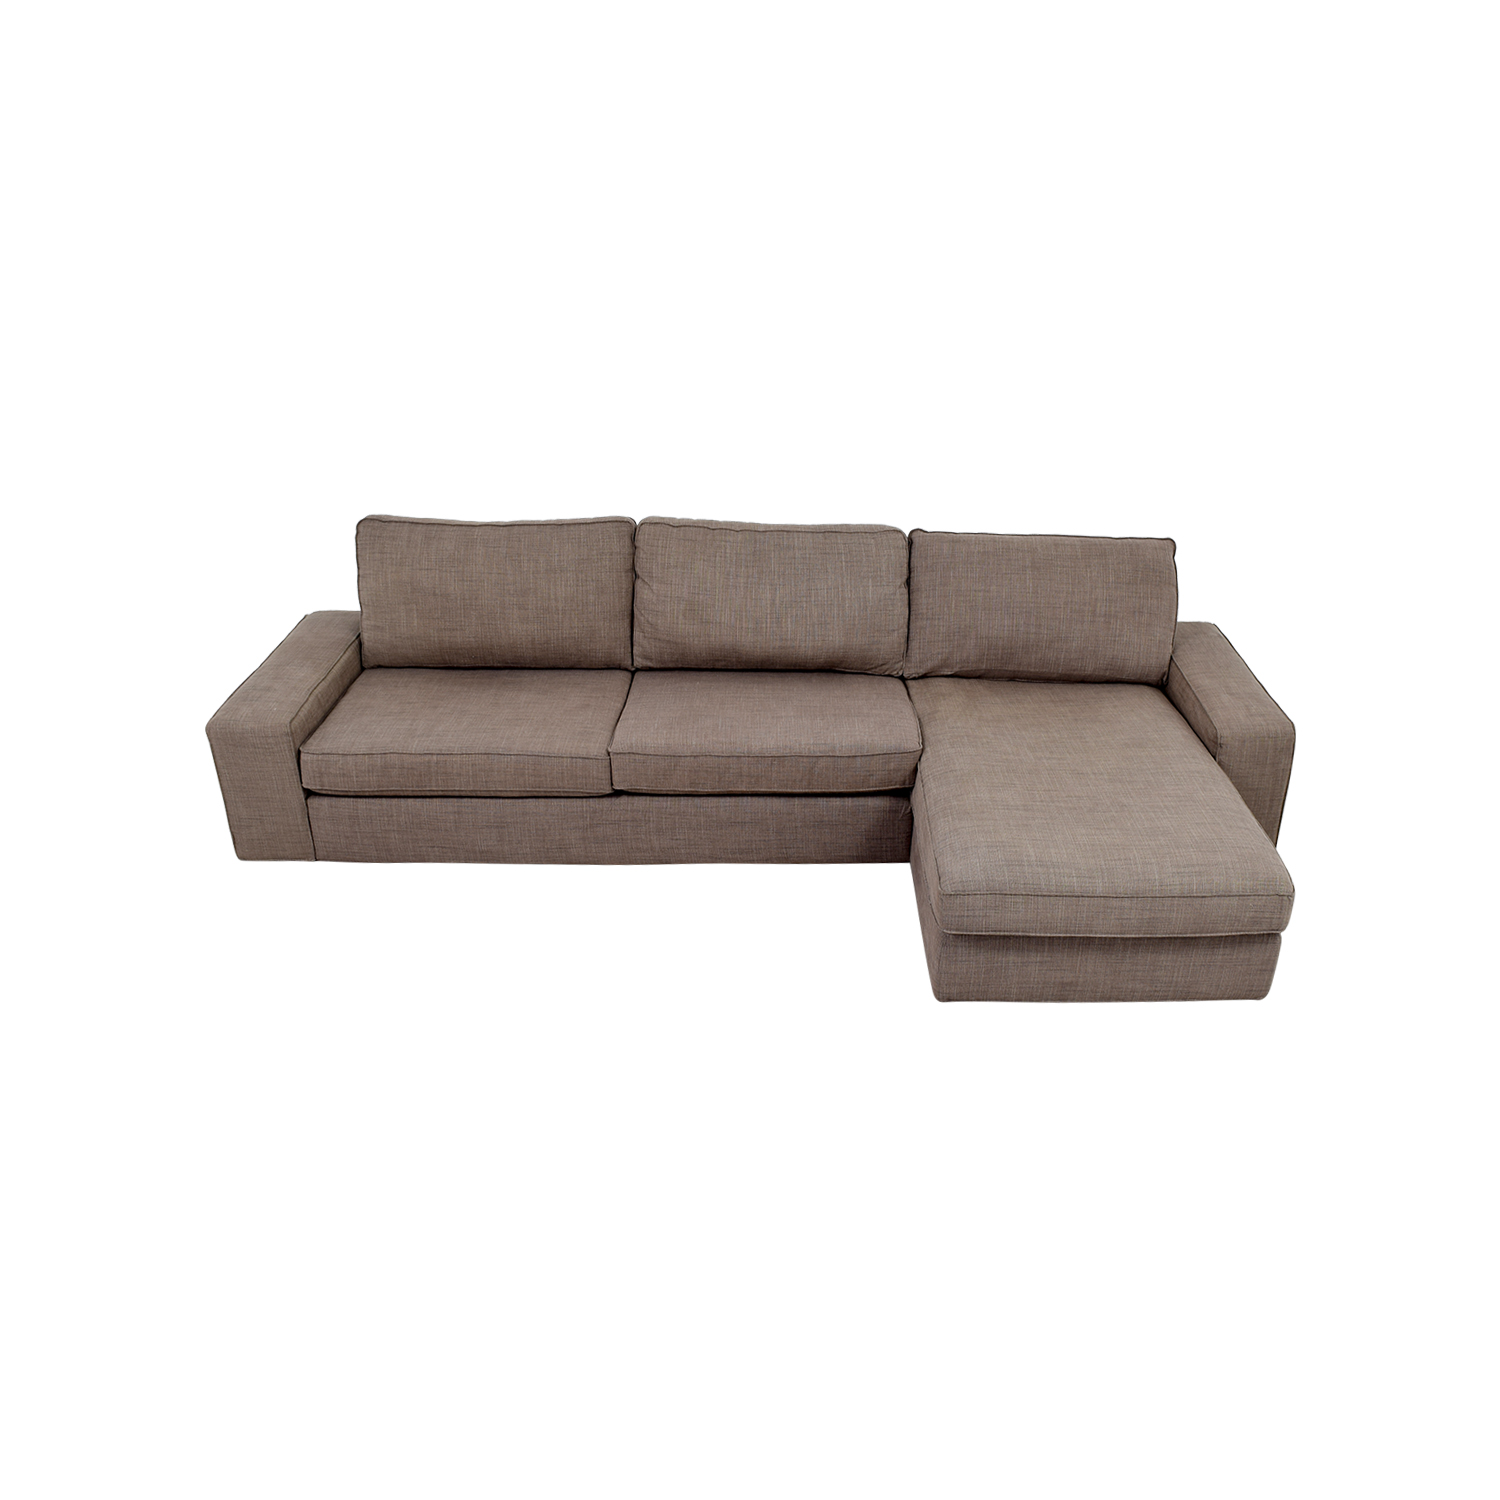 Grey sectional couch ikea ikea grey sectional couch for Ikea gray sofa